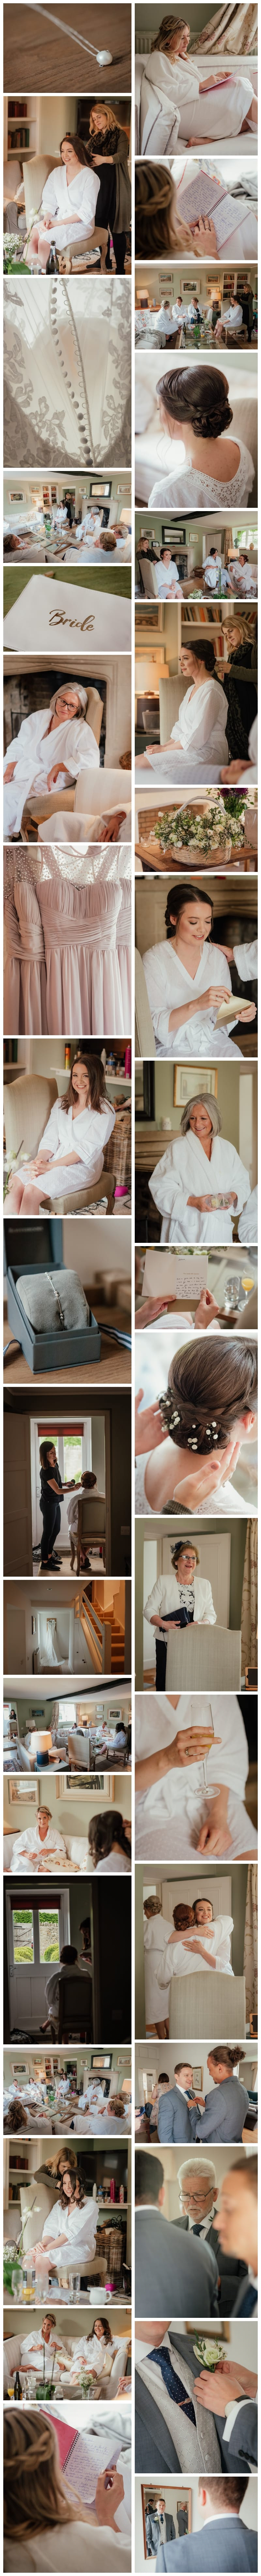 Bridal Preparation Fun Cotswolds